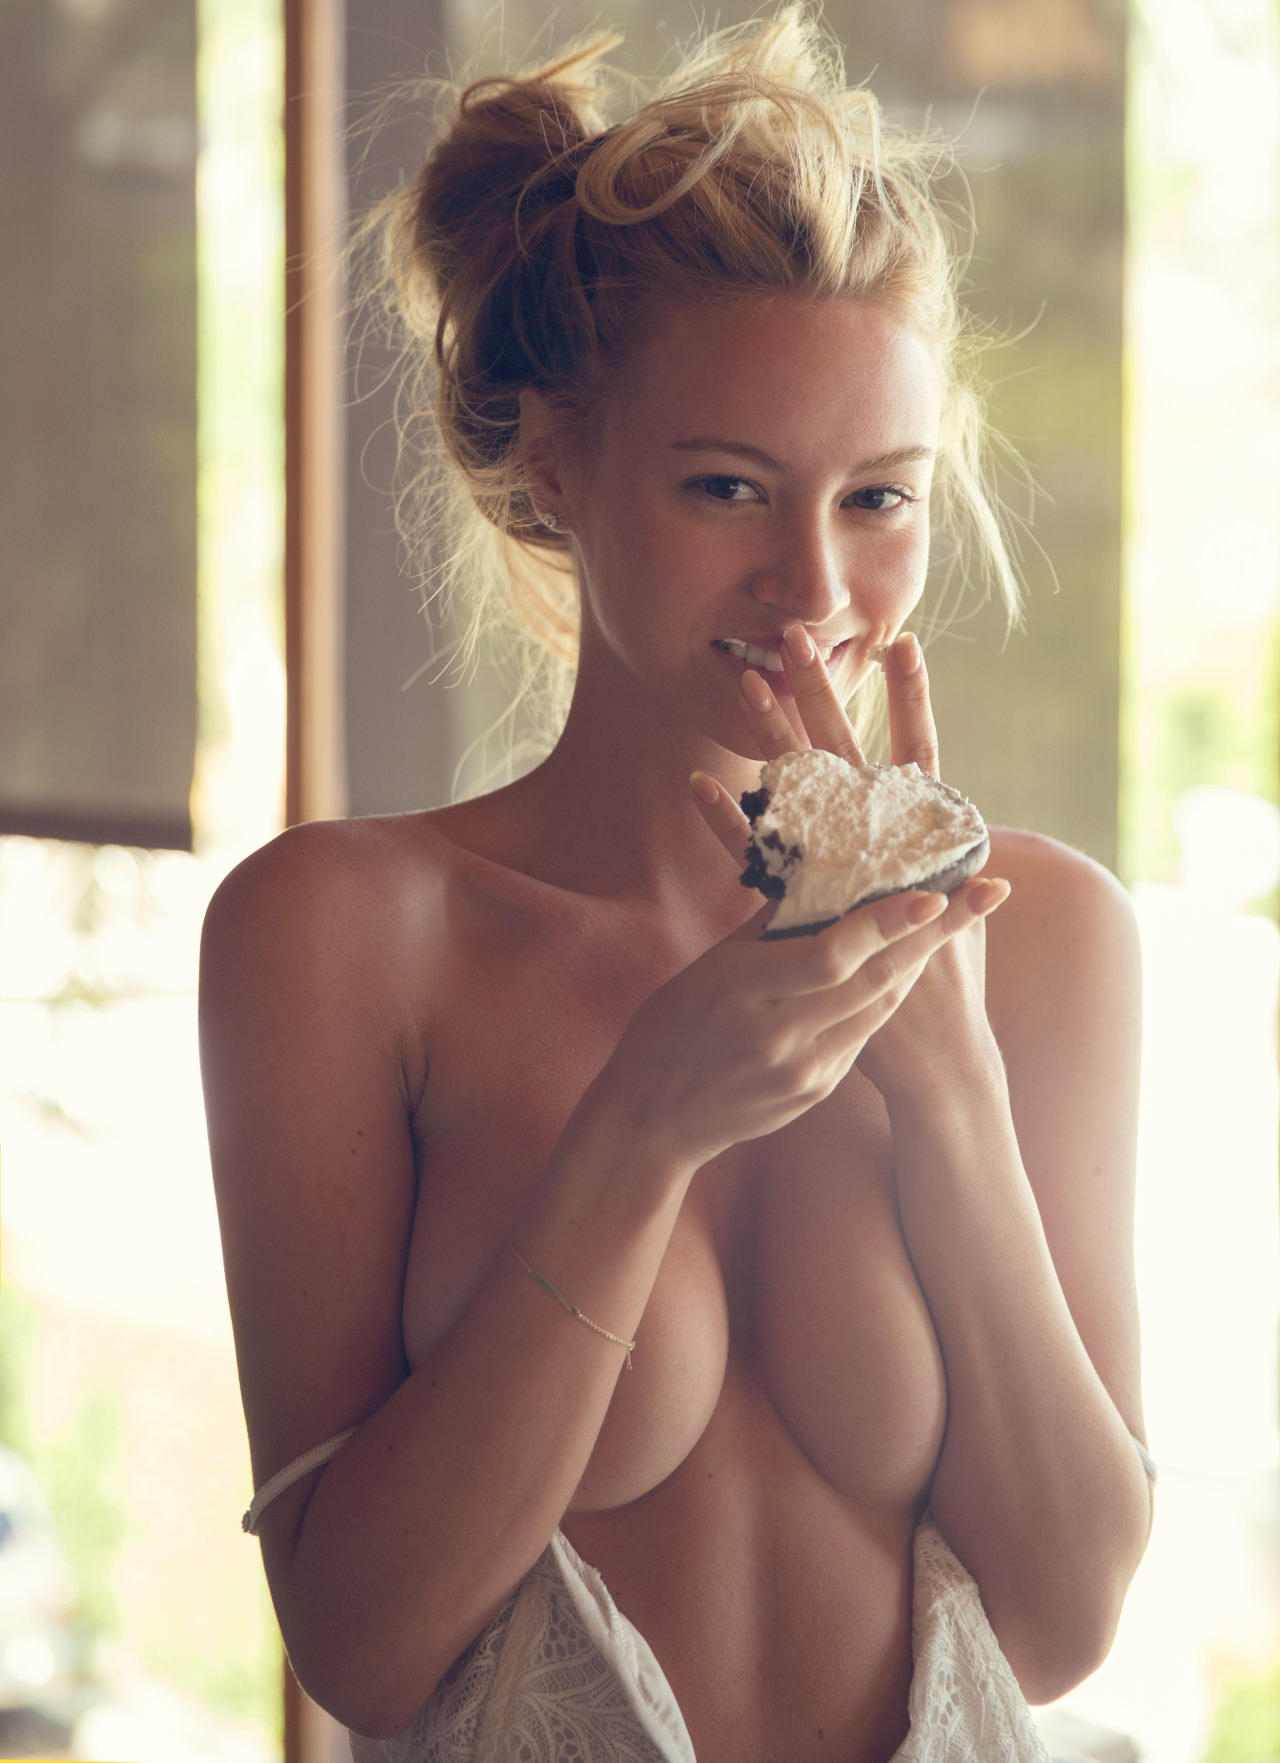 Sex Bryana Holly naked (42 photos), Topless, Is a cute, Instagram, swimsuit 2015